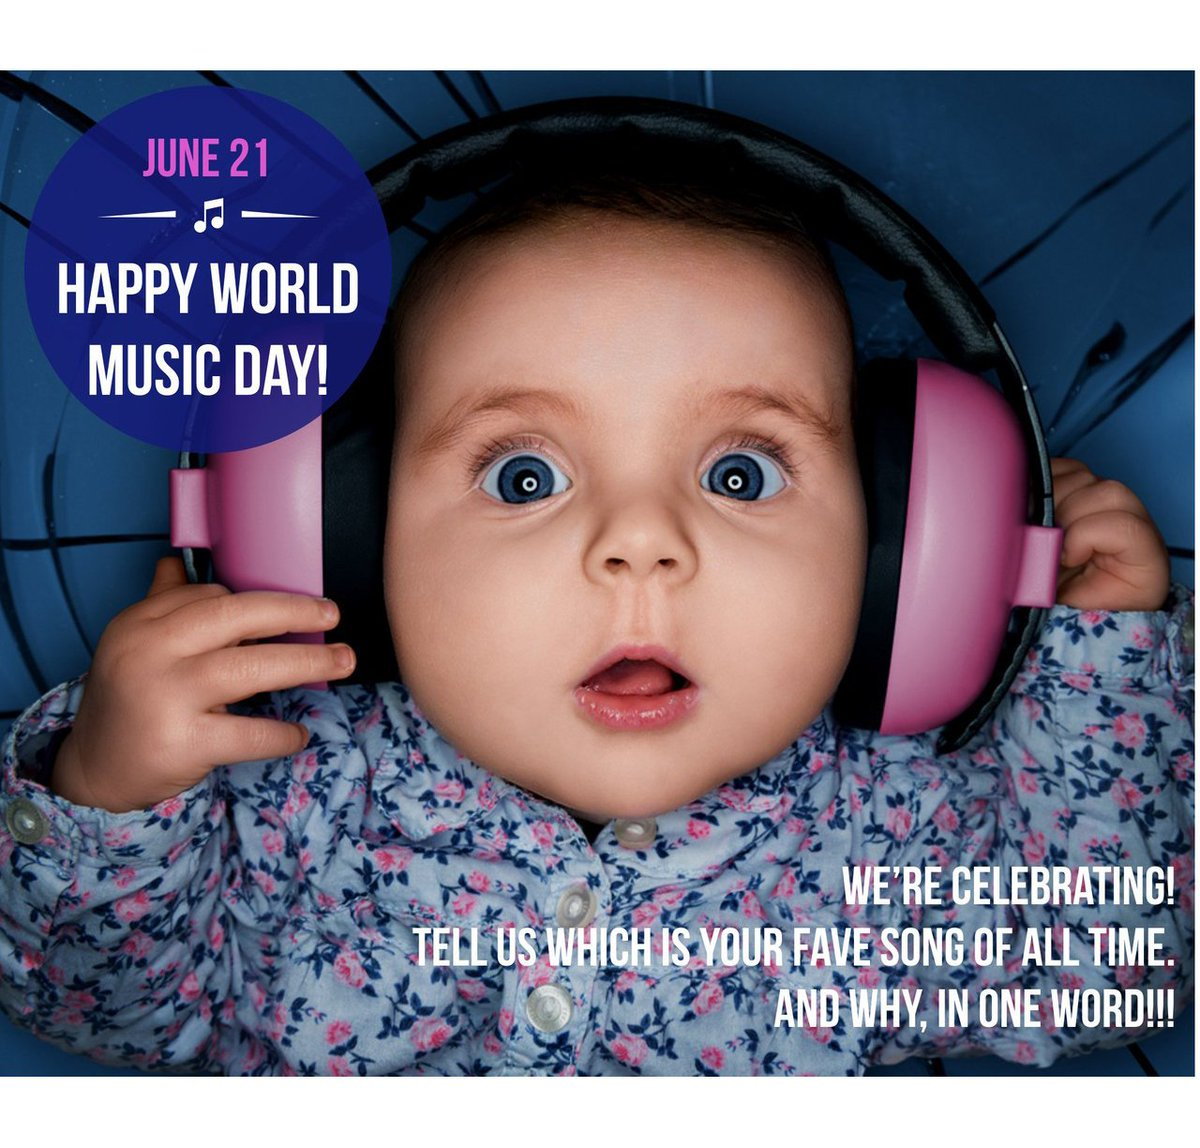 It's all about music today!!  #music #musicvideo #musician #musicislife #rockmusic #popmusic #wednesday<br>http://pic.twitter.com/pYfHNdeqB6